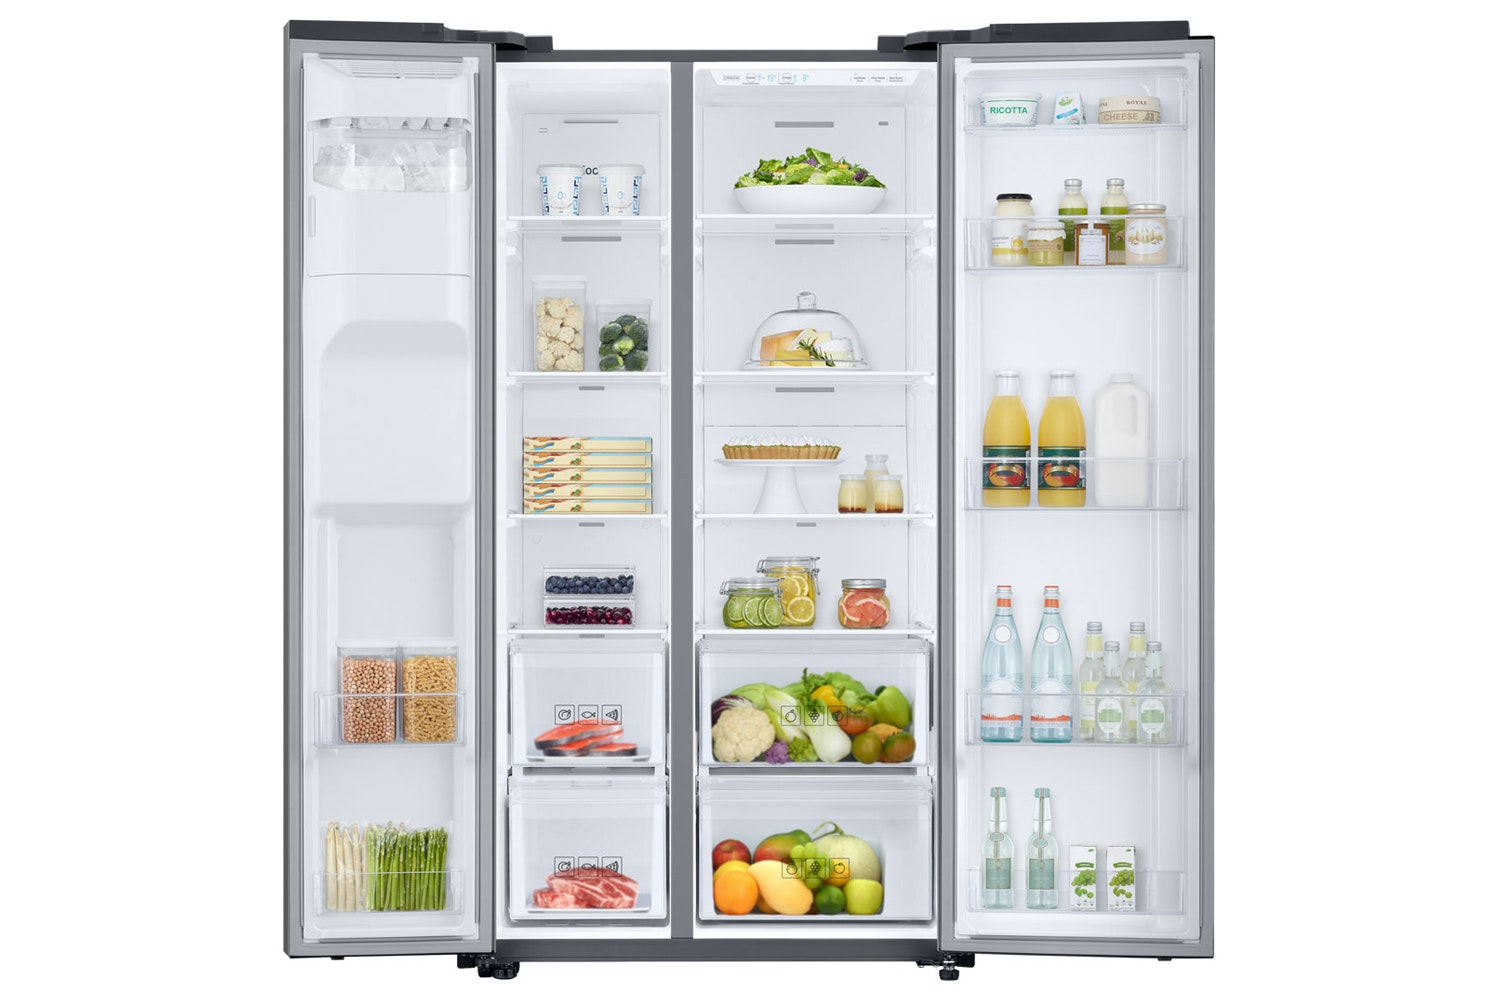 Samsung RS8000 American Fridge Freezer | RS68N8220S9/EU